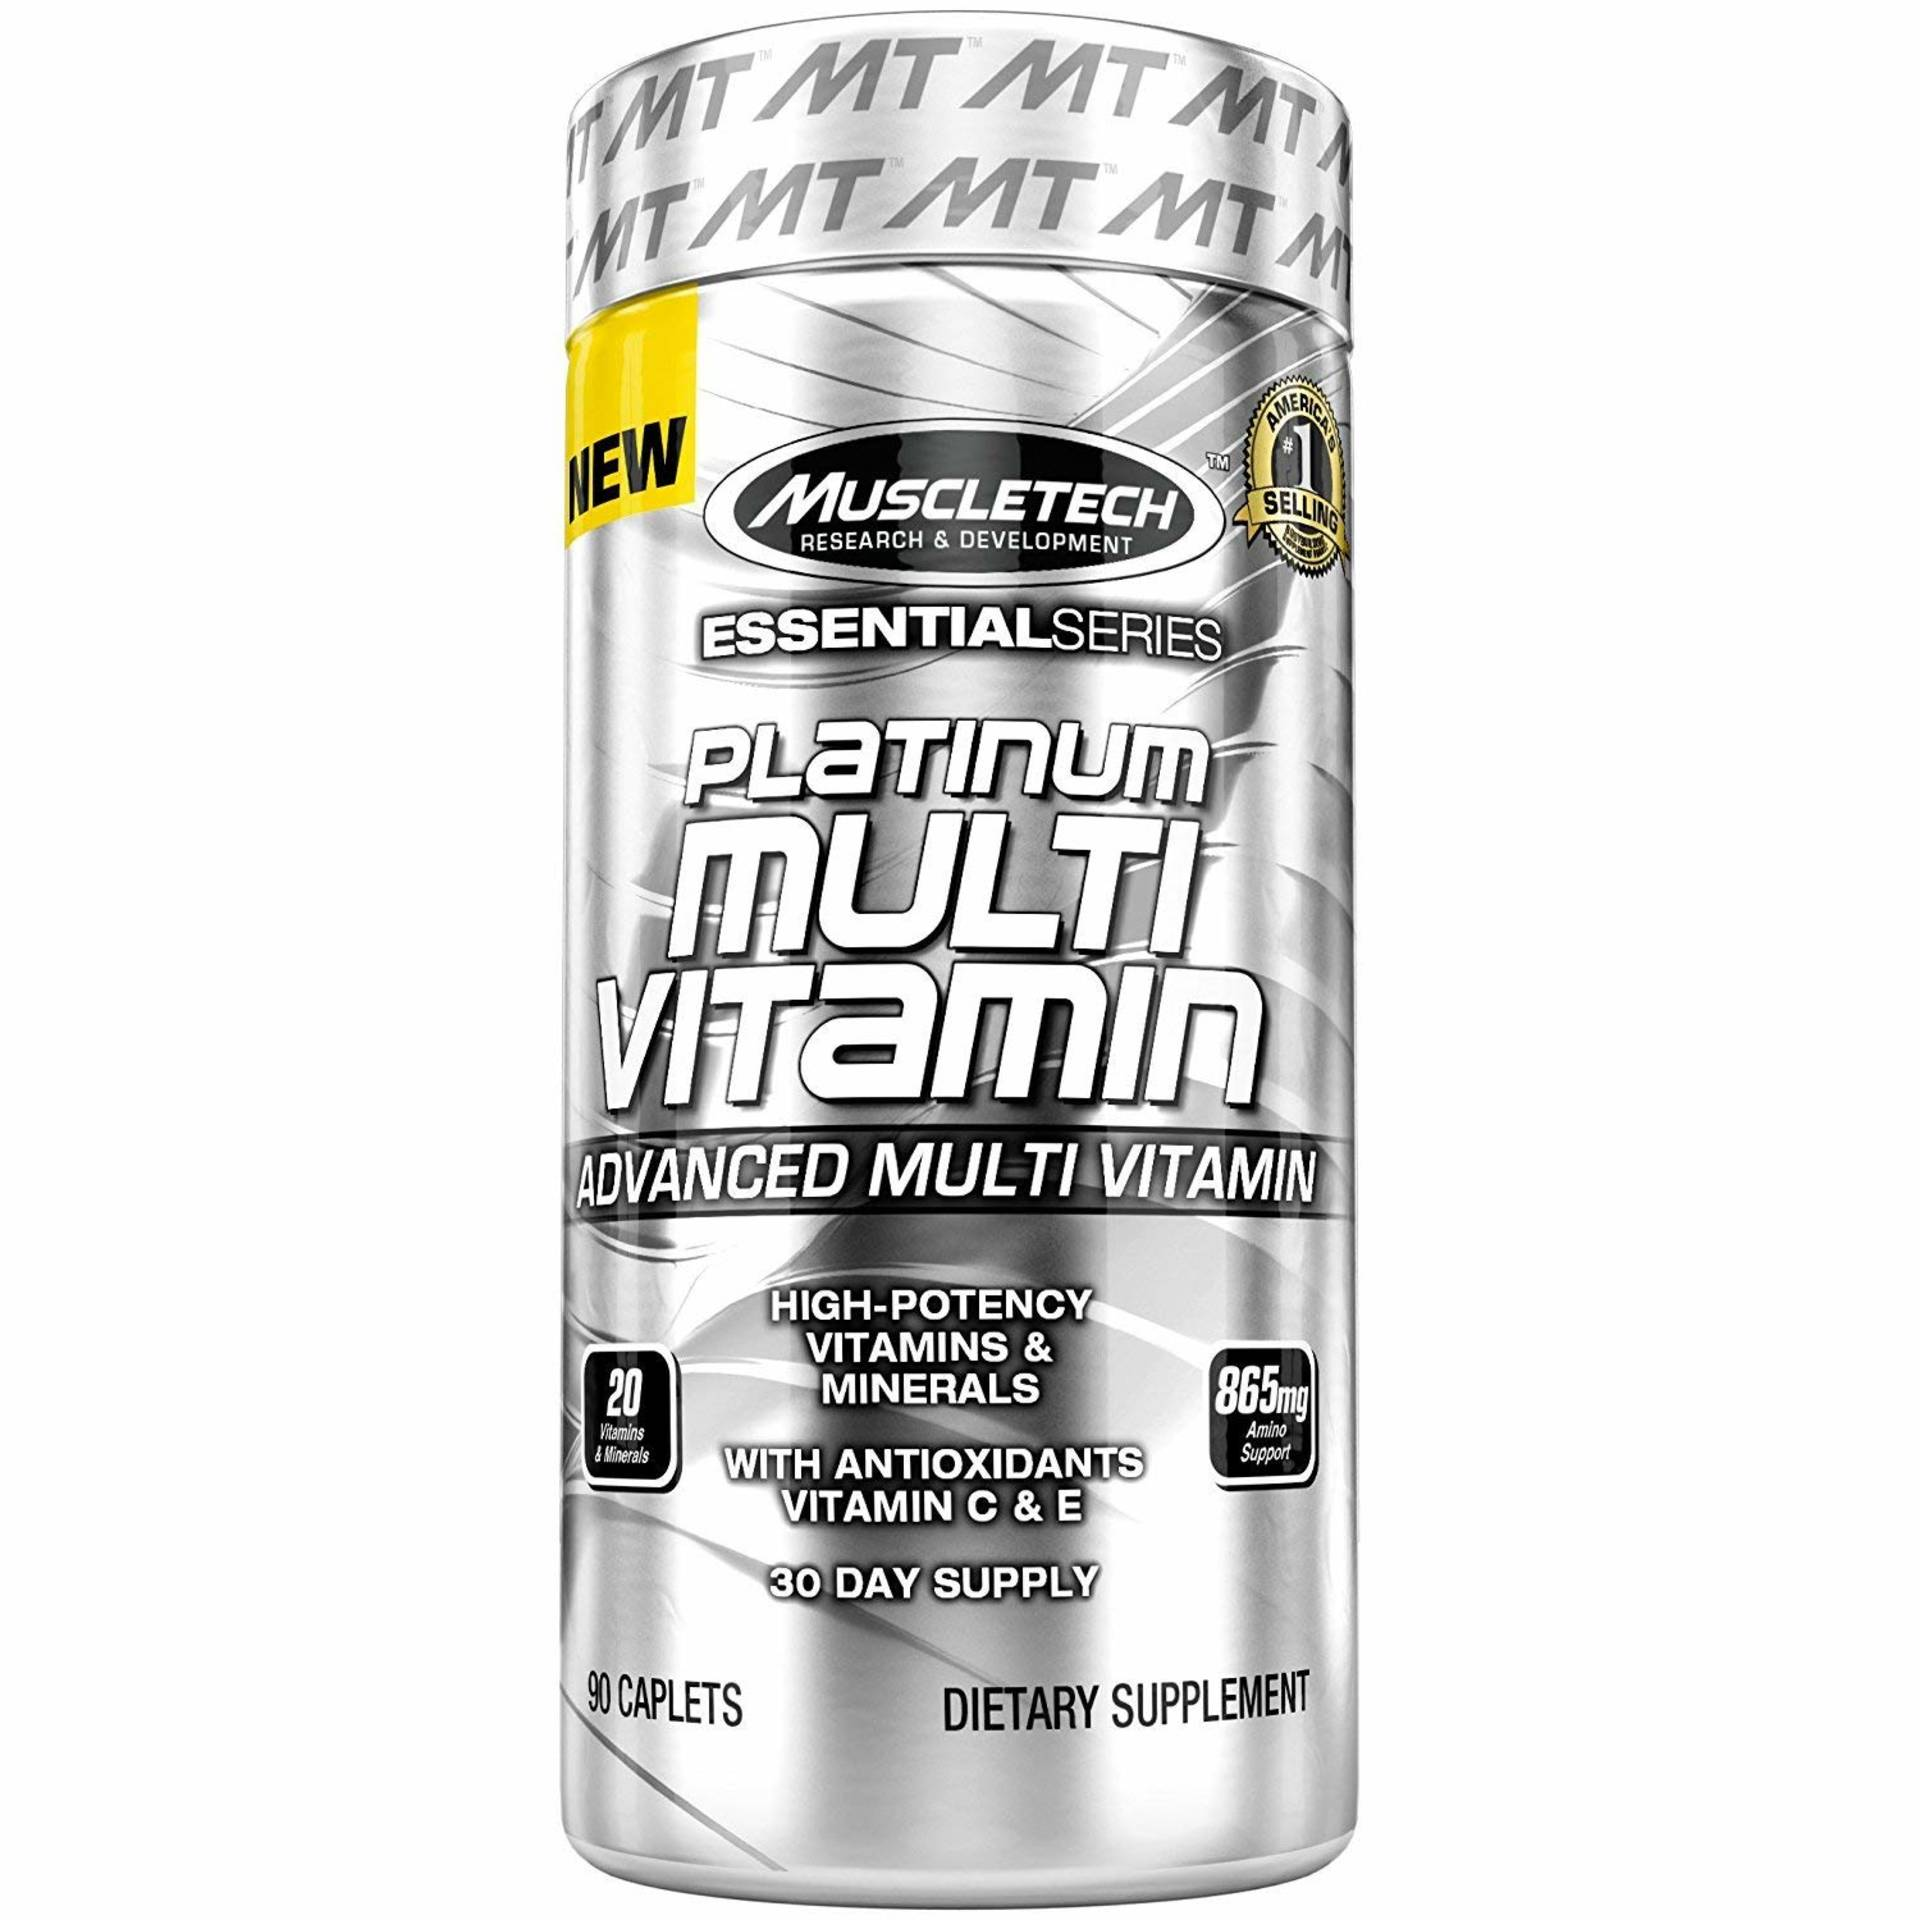 [Lowest Ever] Muscletech Essential Series Platinum Multivitamin - 90 Tablets - Paytm Mall